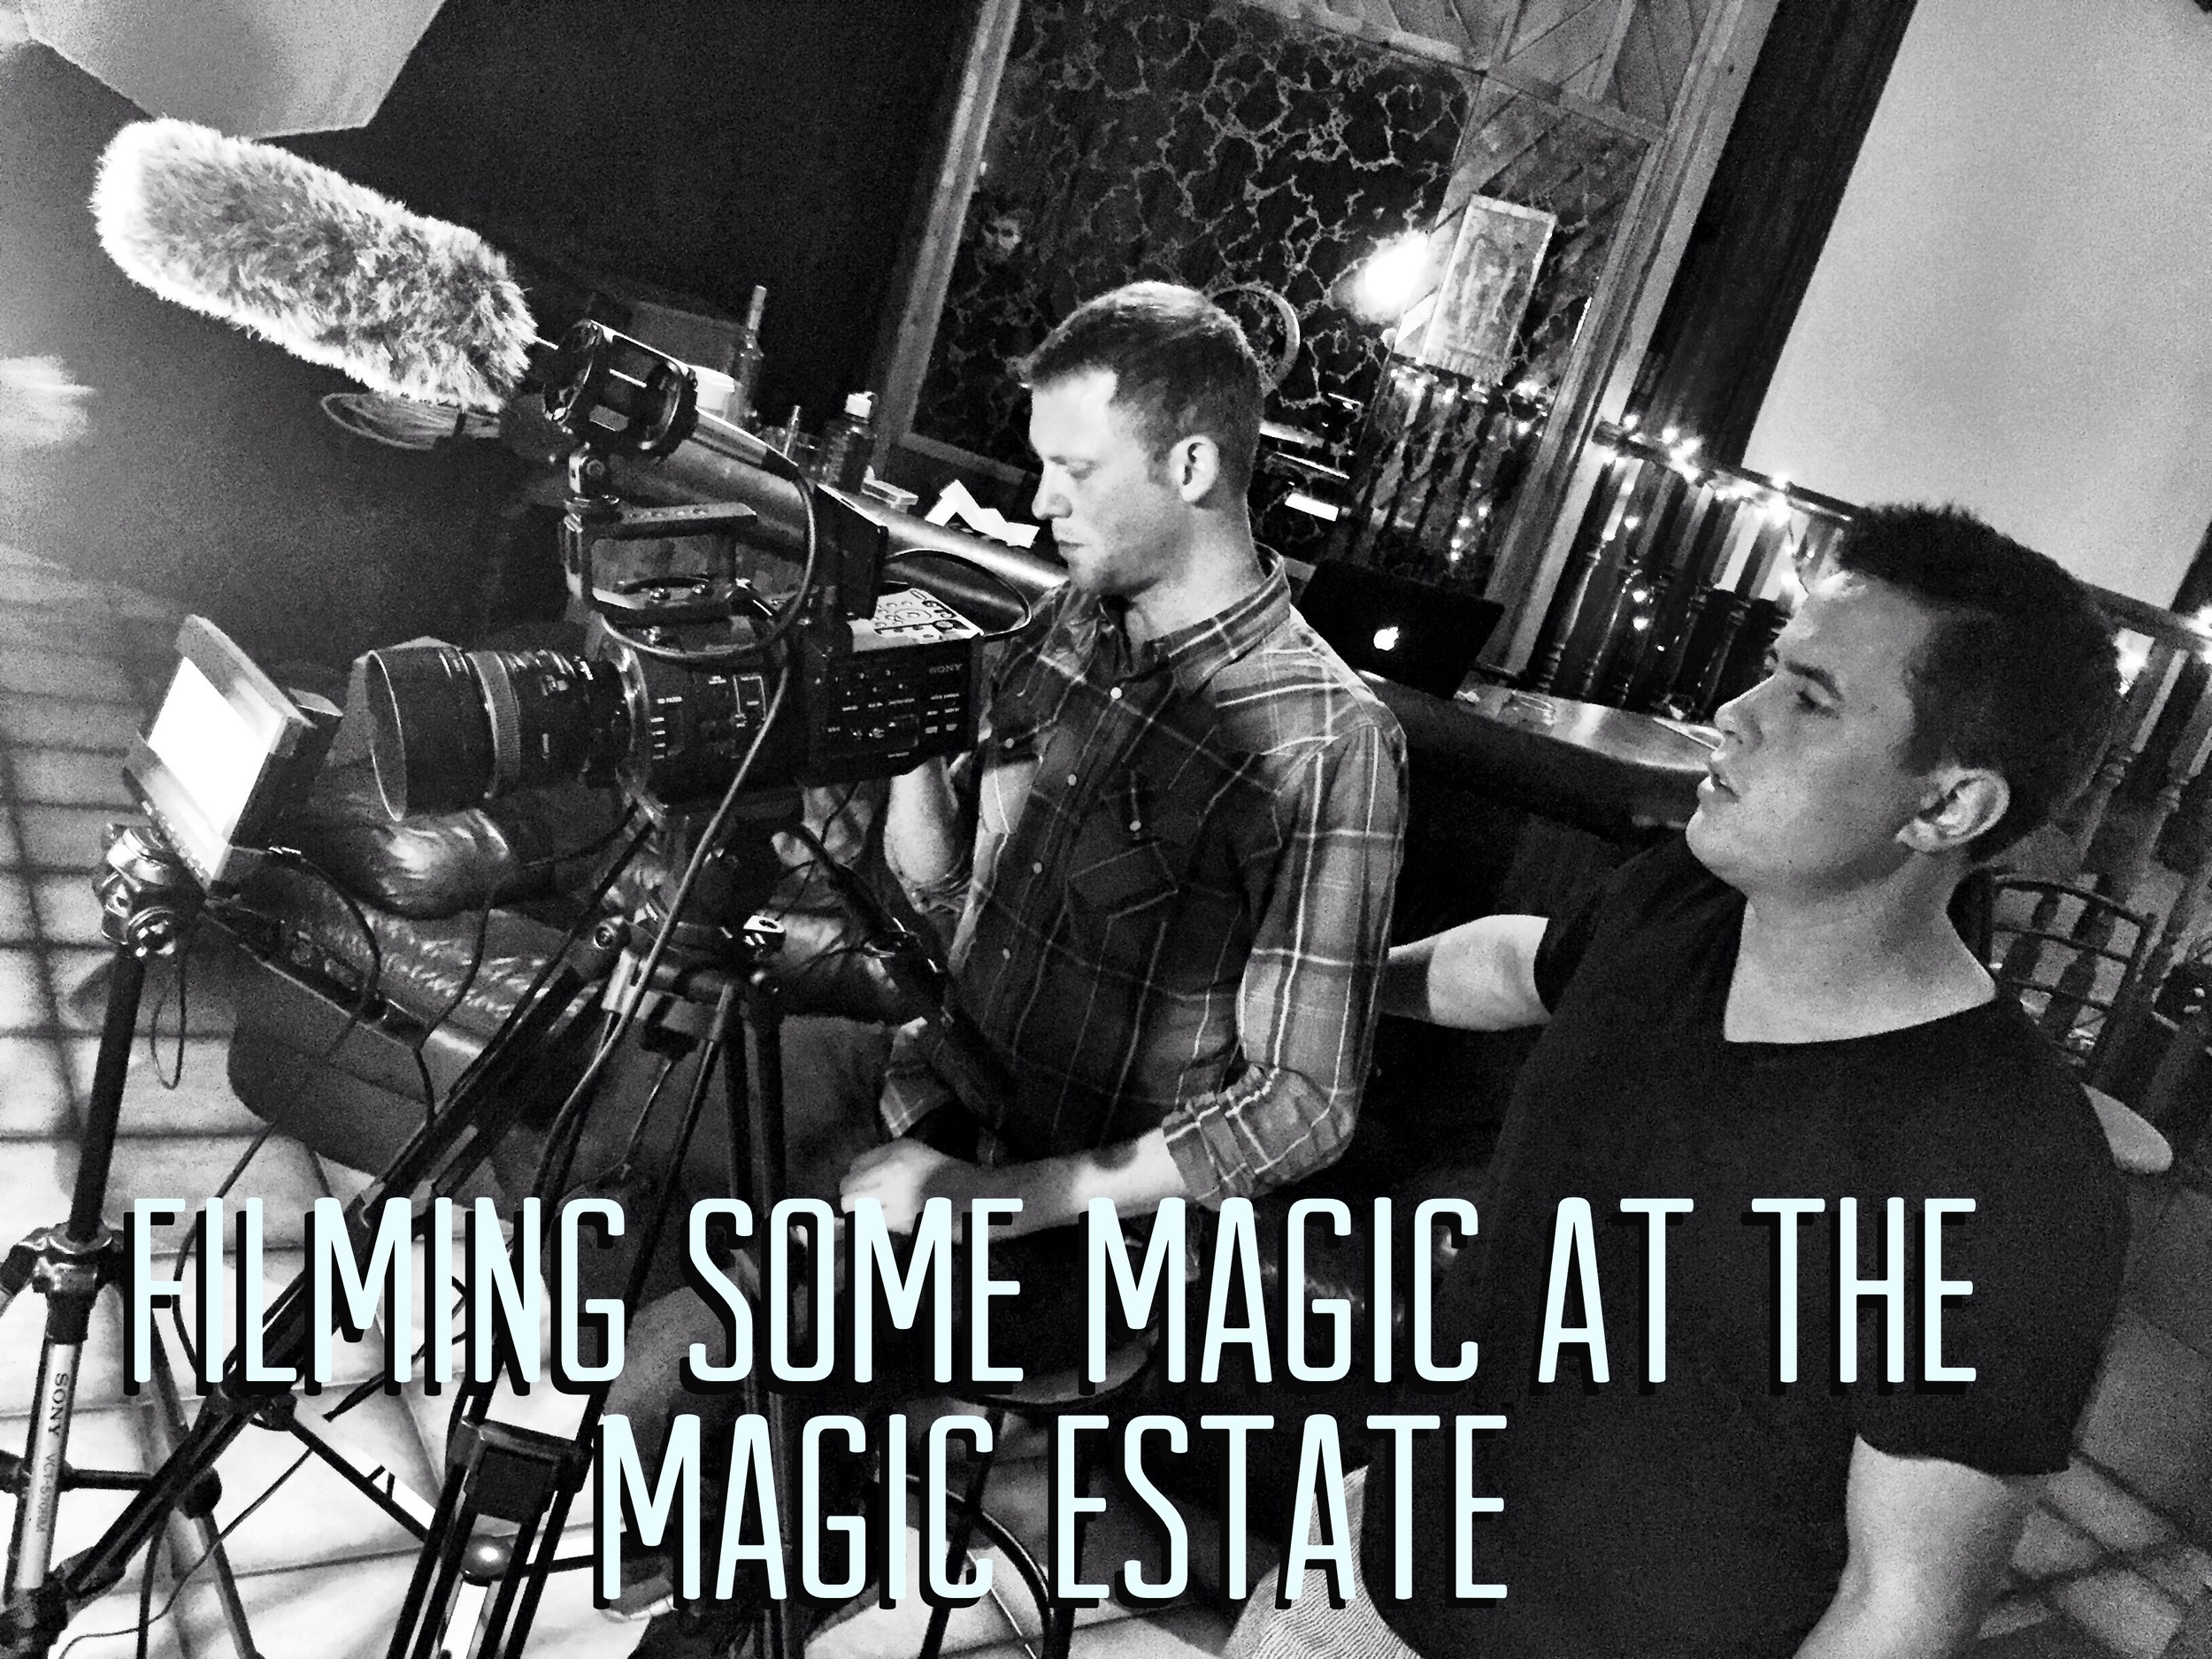 Jeff Kaylor & Aven Pitts filming a dvd project at The Magic Estate - Studio A.